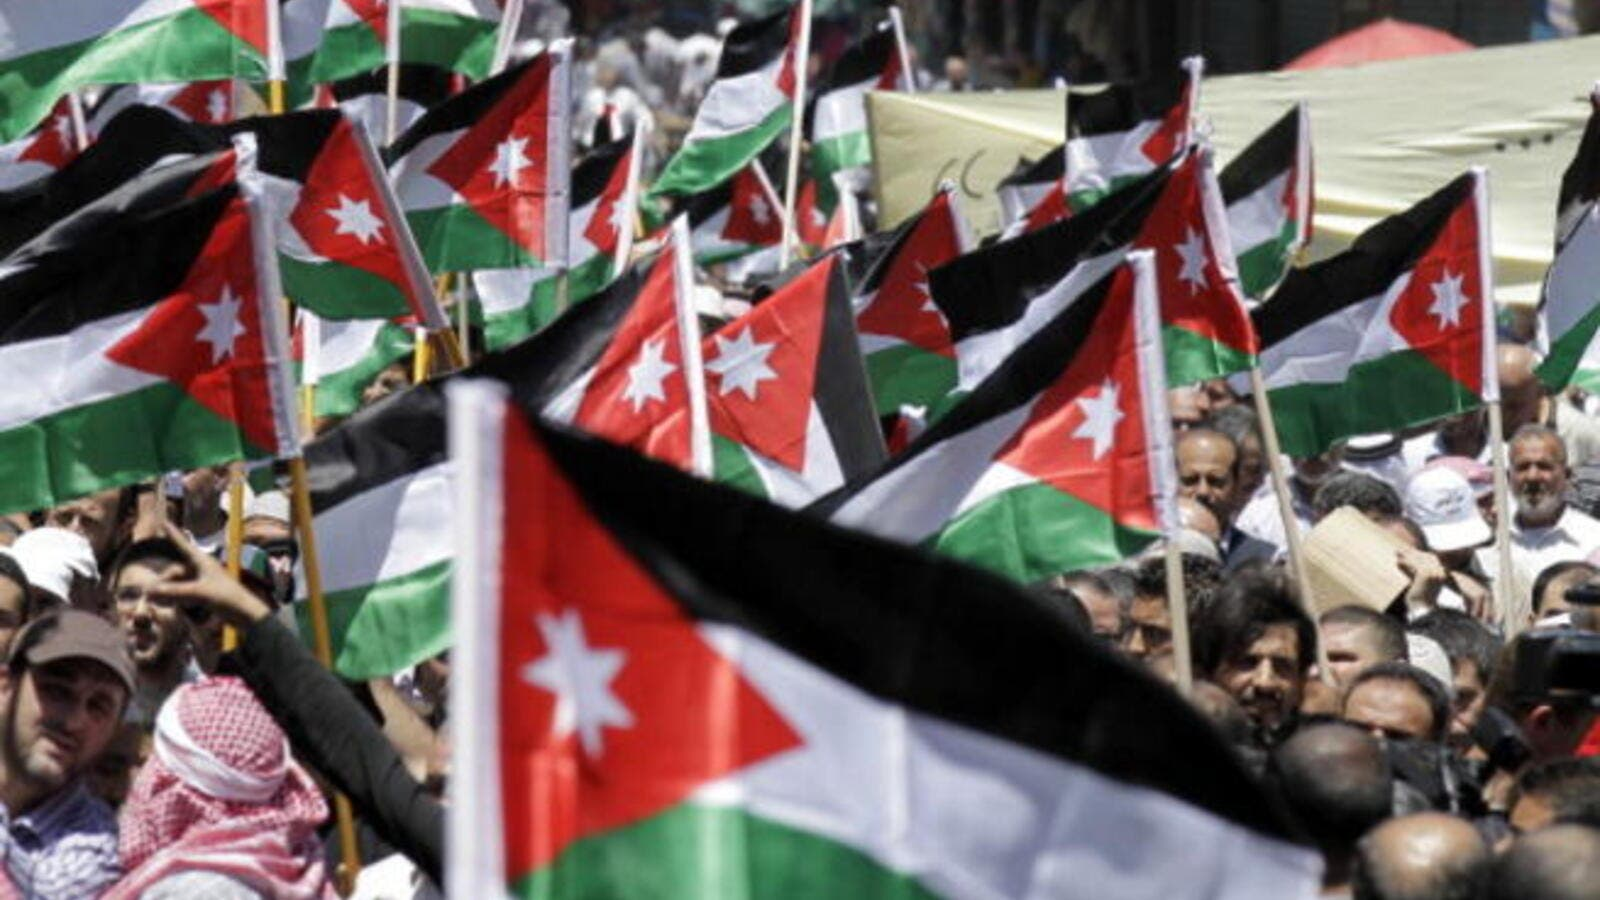 Protesters from the Islamic Action Front and other opposition parties hold up Jordanian national flags and shout slogans demanding political and economic reform, and access to cases of corruption, during a demonstration in Amman on June 14, 2013. [AFP]